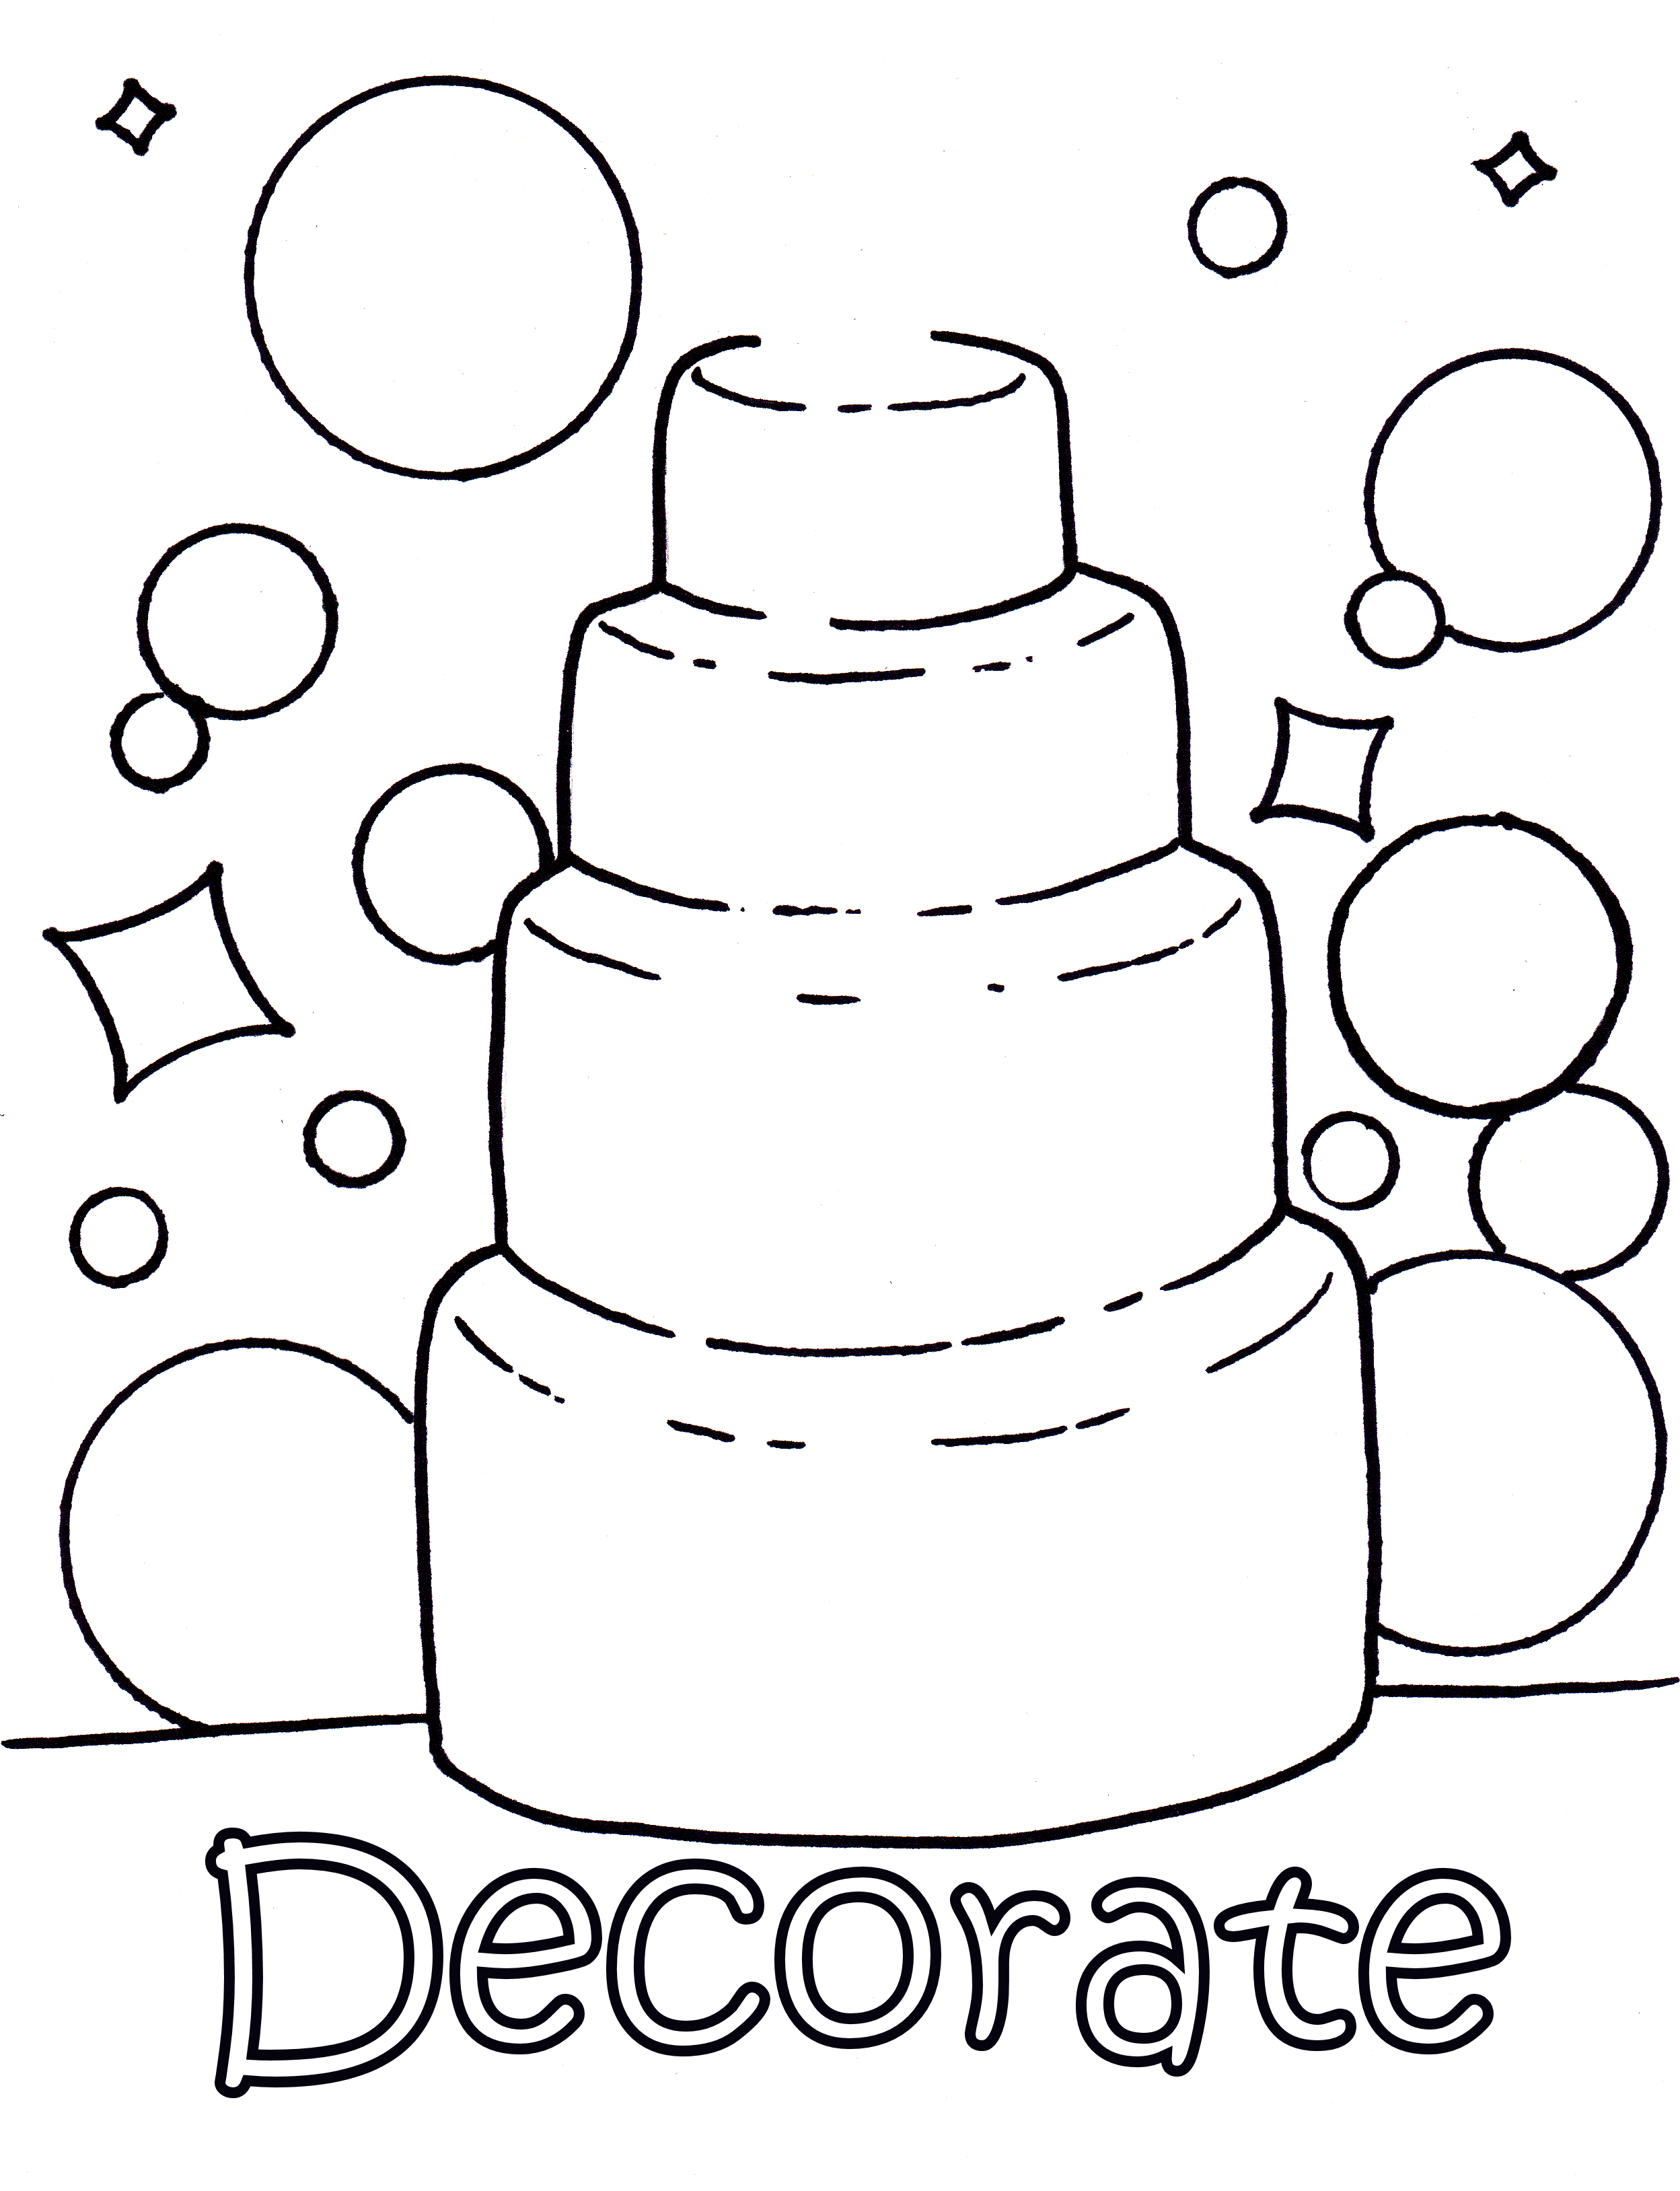 Uncategorized Free Wedding Coloring Pages To Print decorate your own wedding cake colouring page pageswedding coloring pages prints and colors